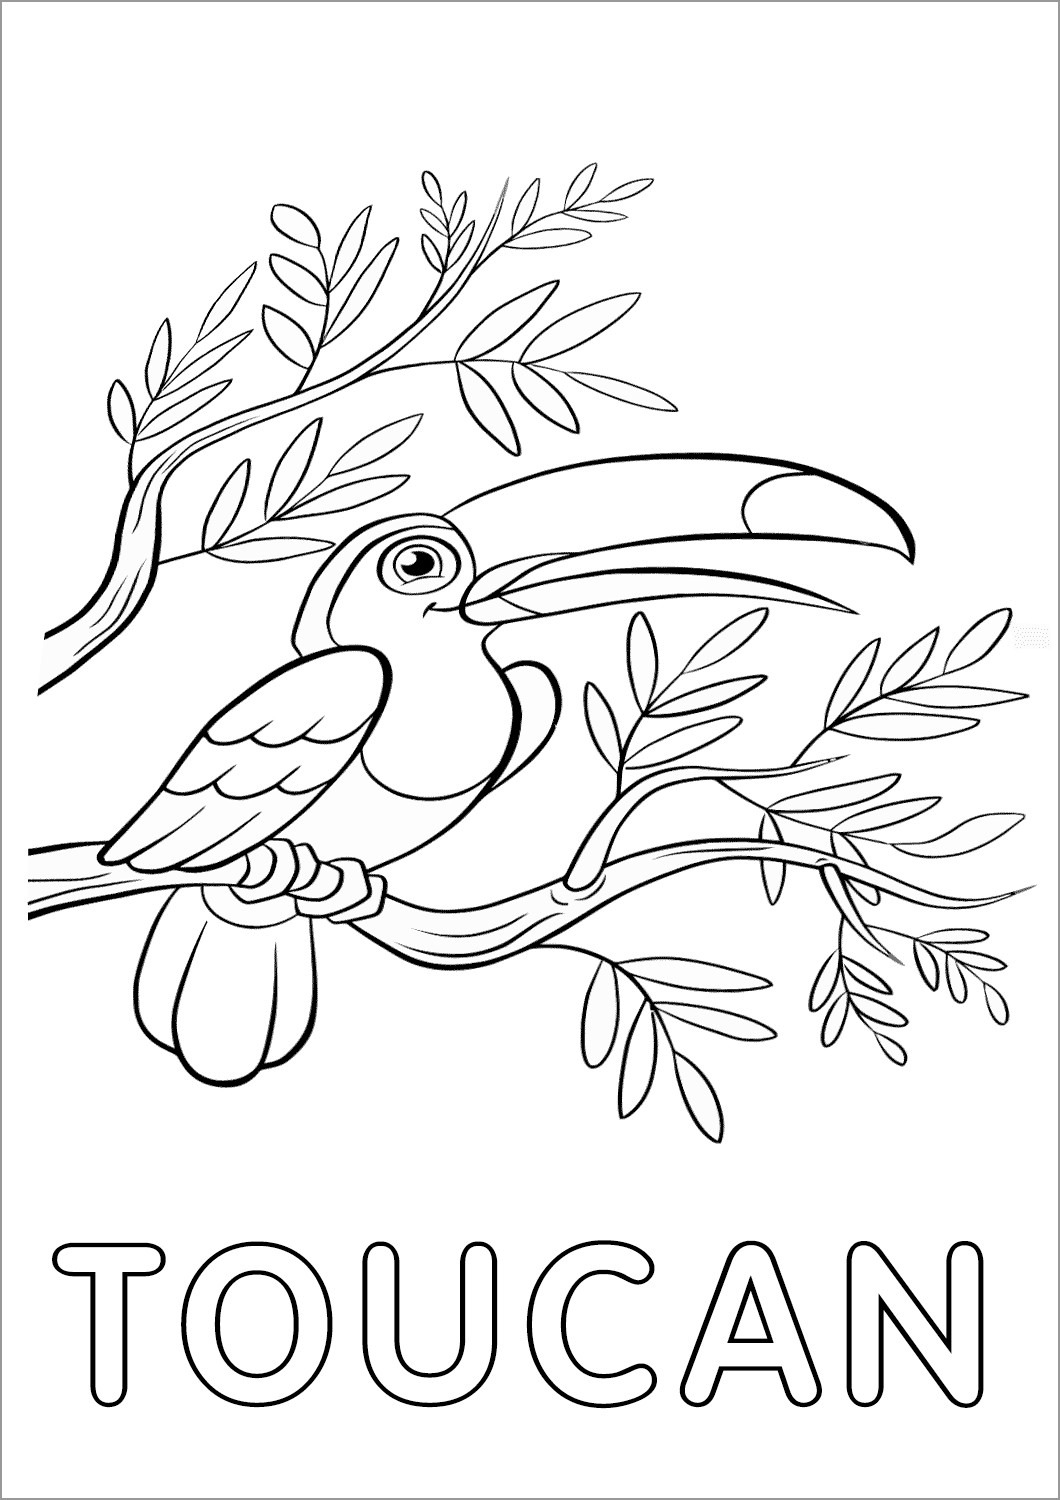 Toucan Coloring Page Printable